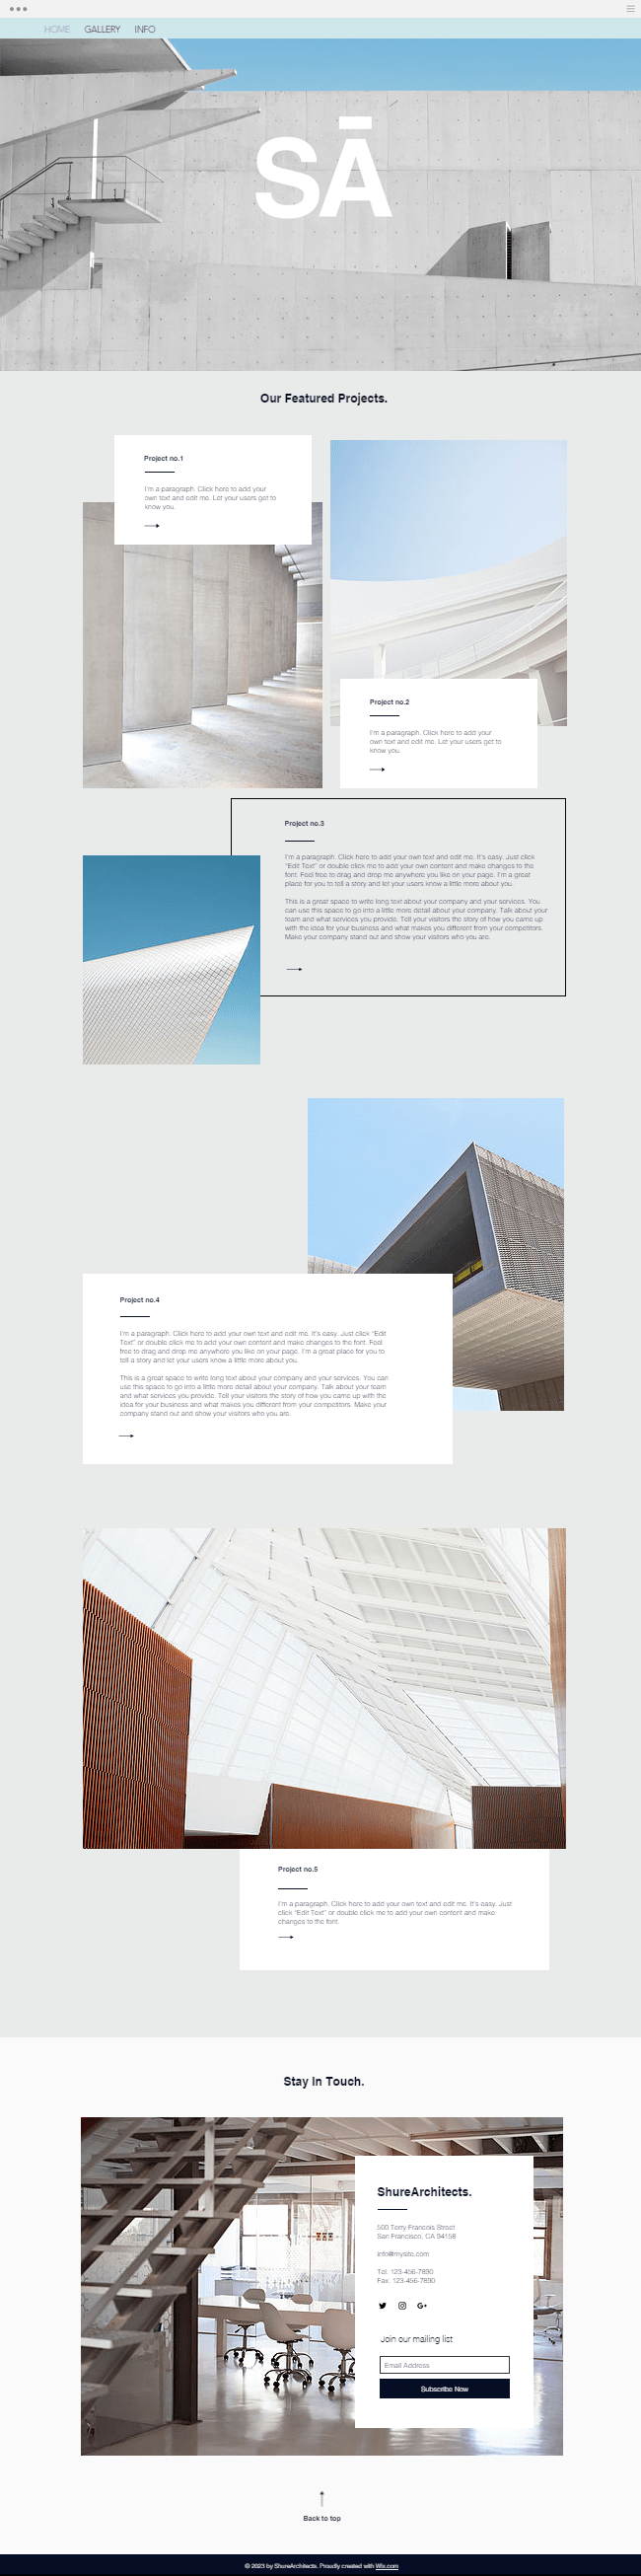 Architecture Firm Template | WIX